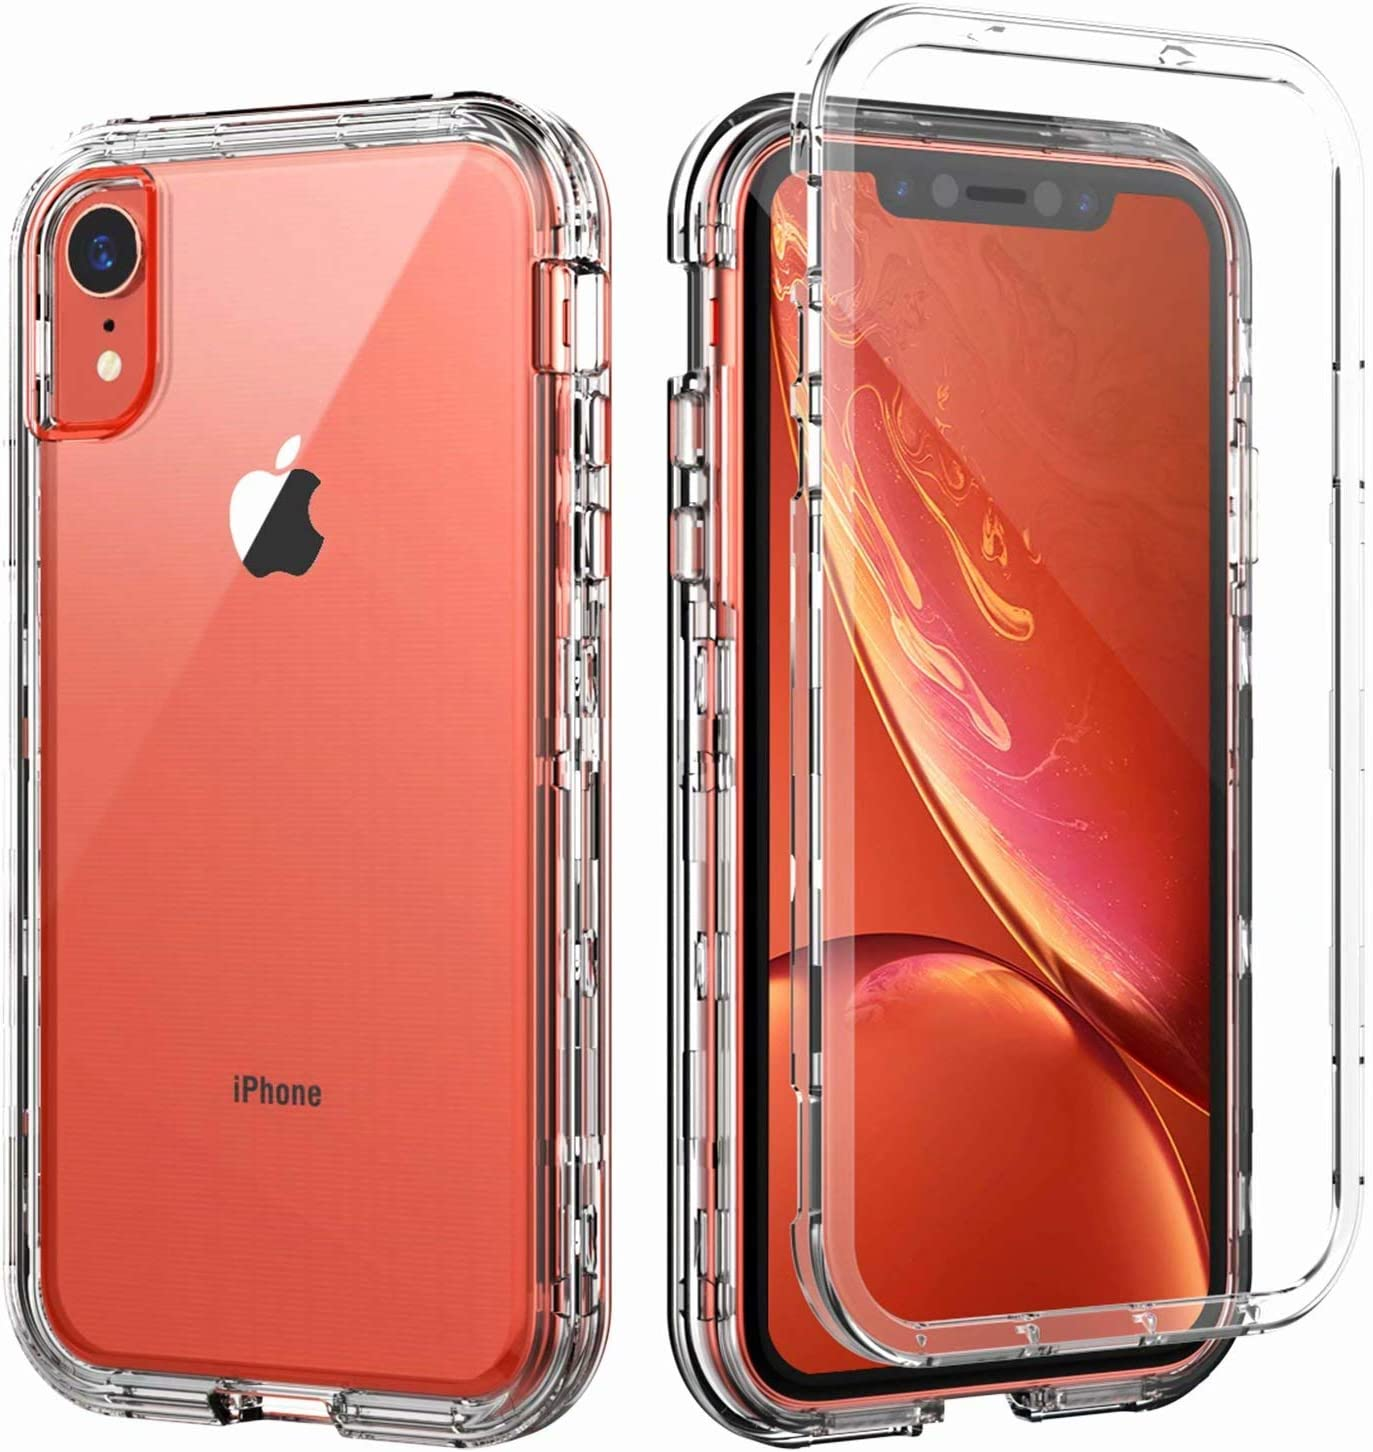 Amazon Com Skylmw Case For Iphone Xr Shockproof Three Layer Protection Hard Plastic Soft Tpu Sturdy Armor Protective High Impact Resistant Cover For Iphone Xr 2018 6 1 Inch For Men Women Girls Boys Clear